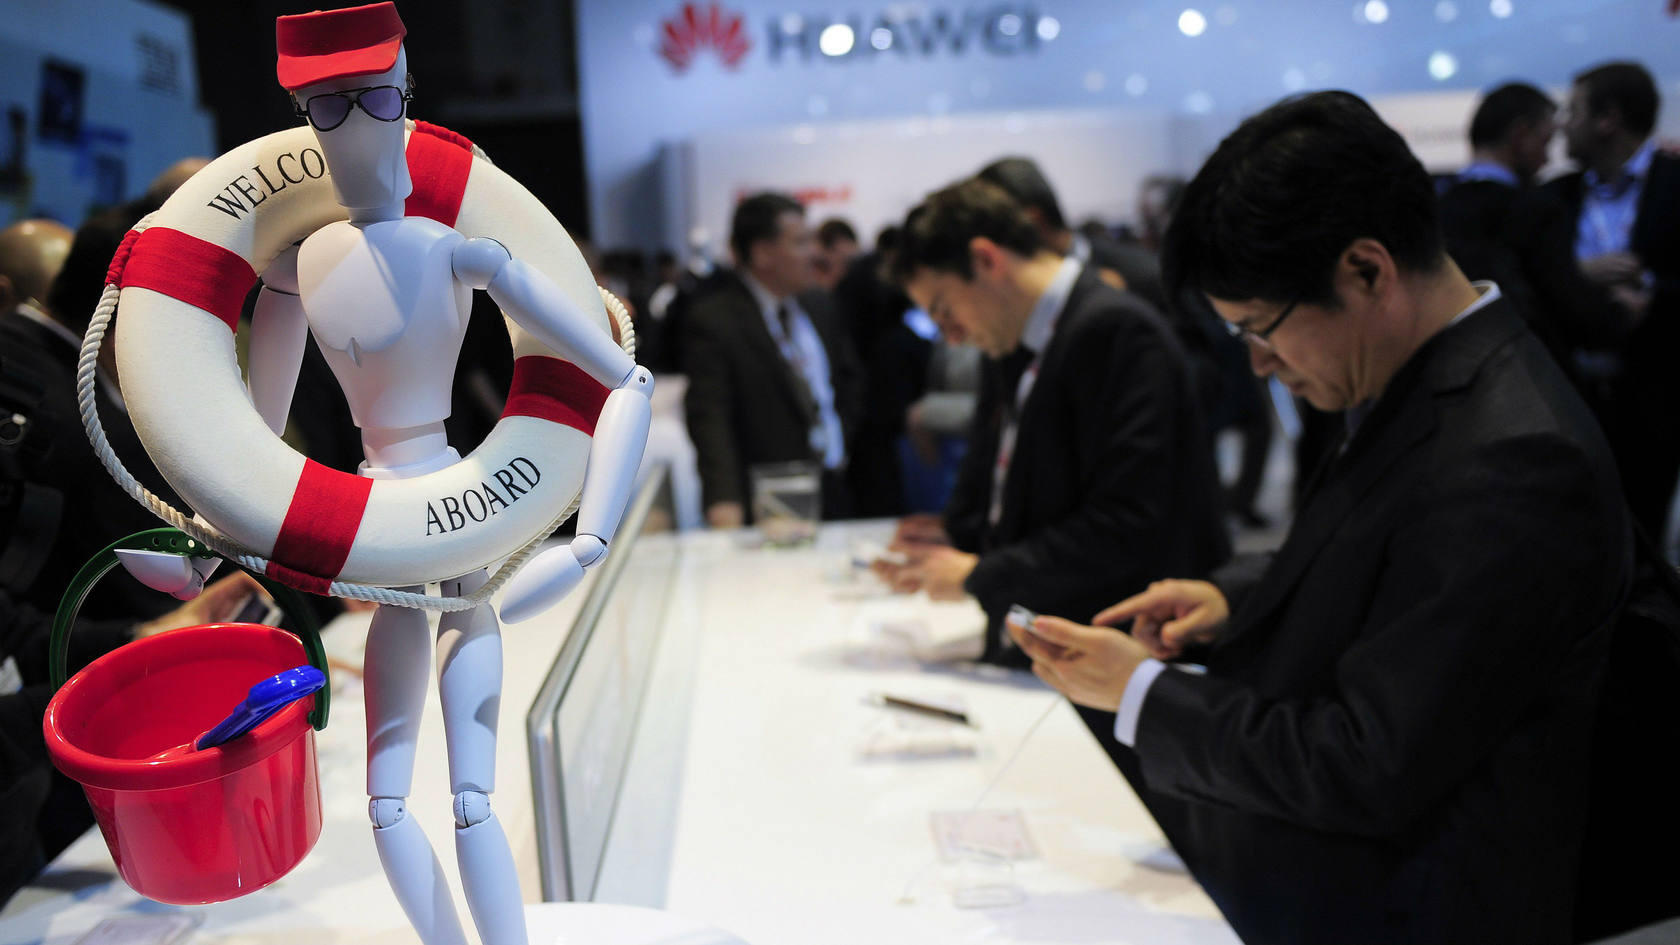 El Mobile World Congress de Barcelona en im�genes